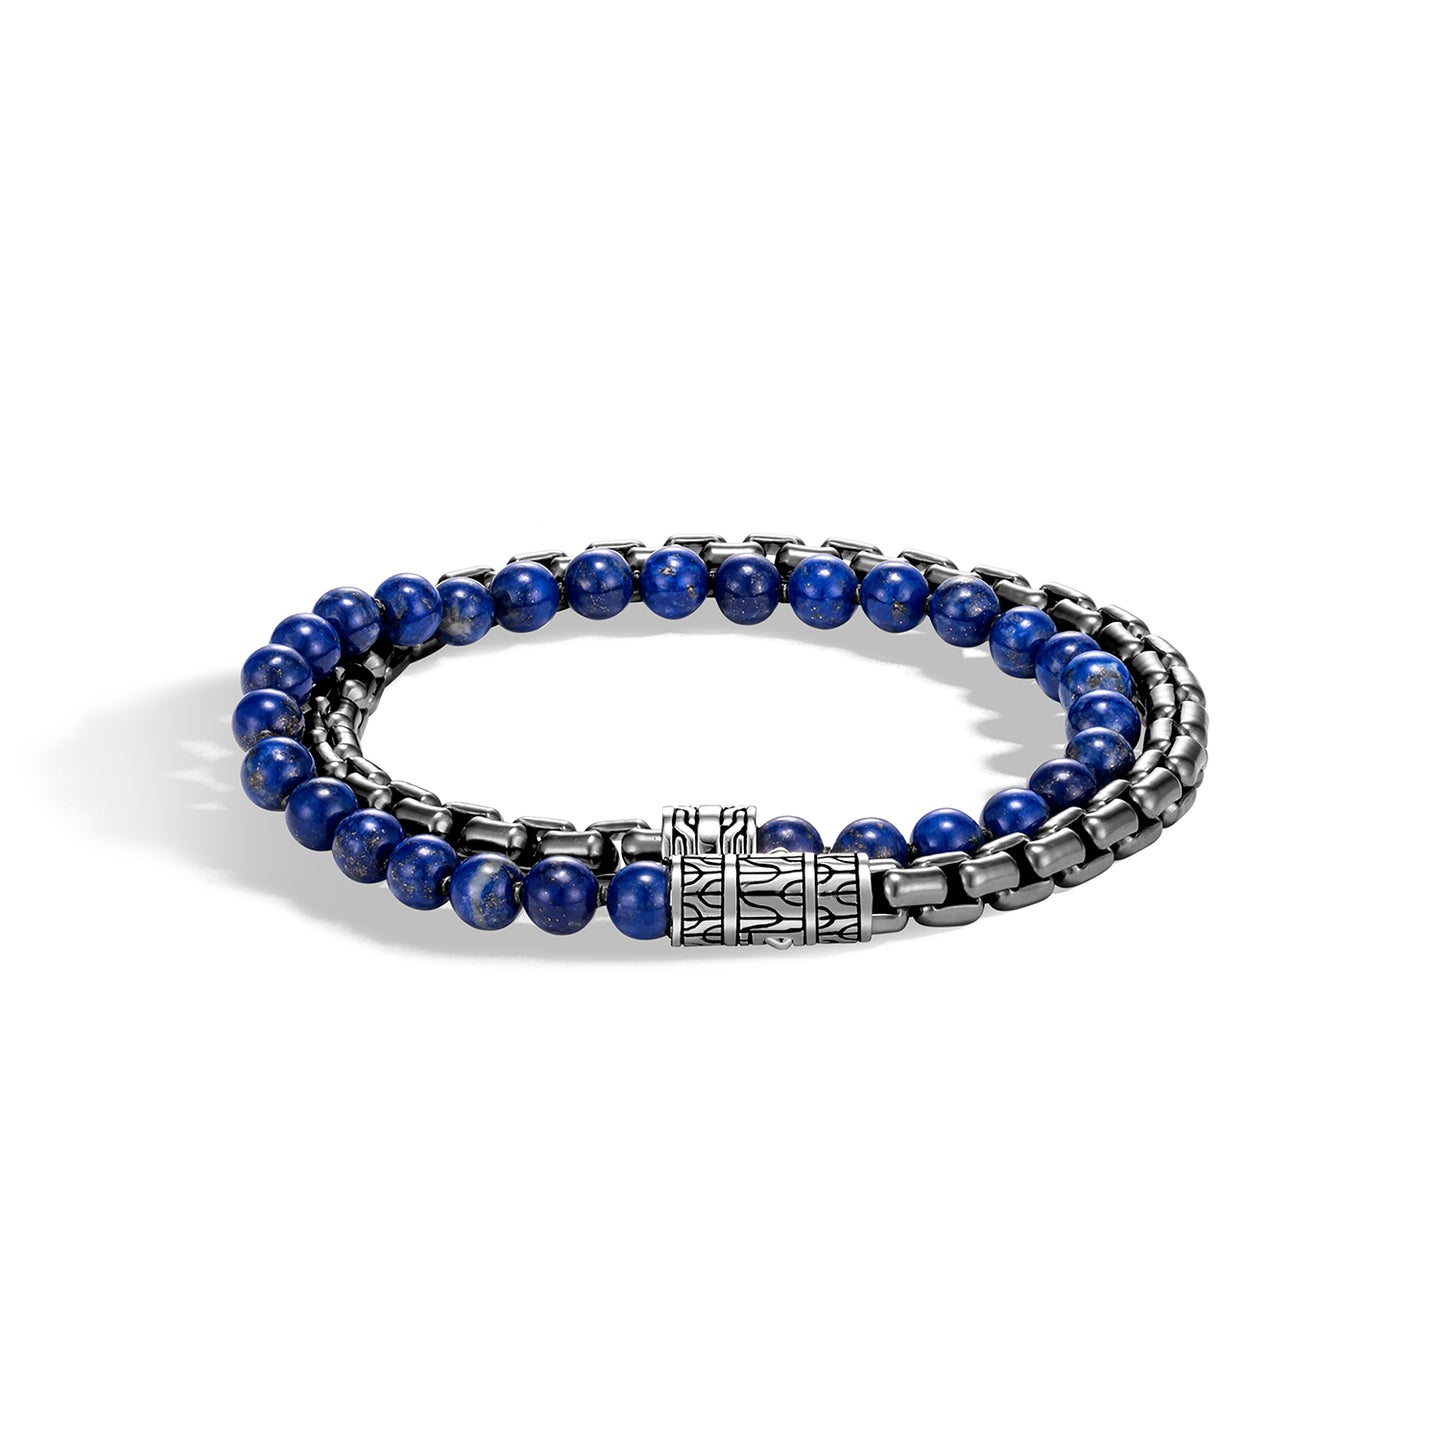 John Hardy Men's Classic Chain Lapis Lazuli Bead and Box Chain Wrap Bracelet